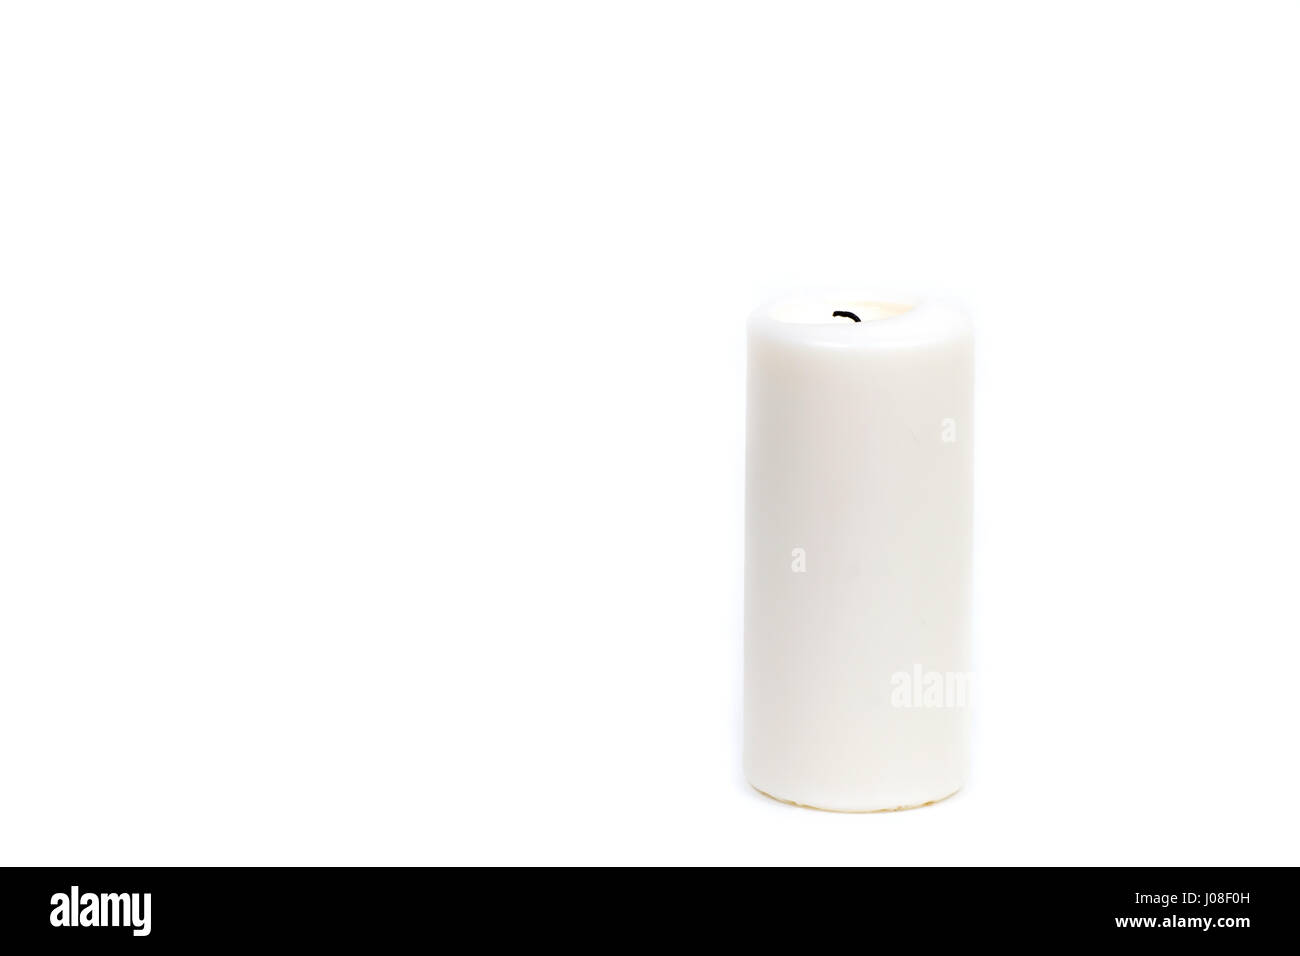 a candle is lit in the darkness and gives spiritual warmth - Stock Image